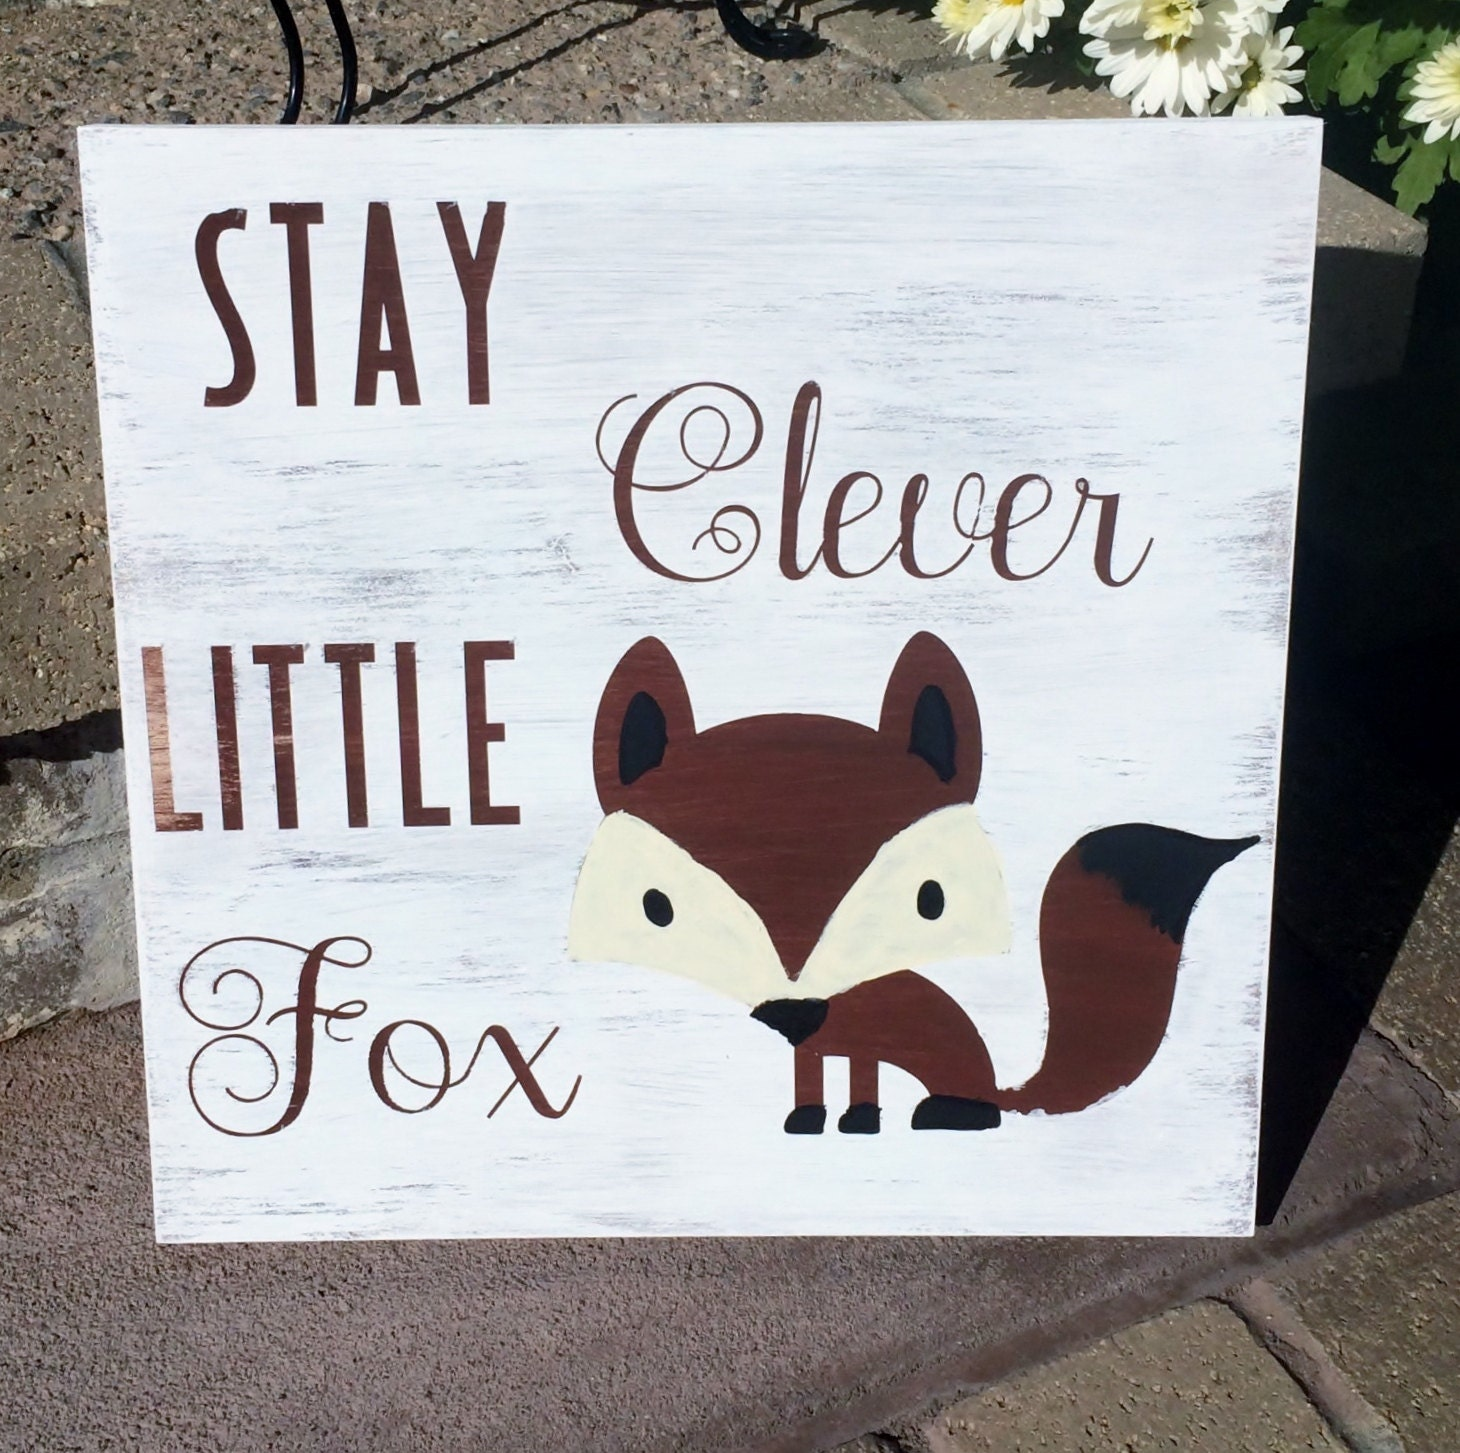 Clever Fox: Stay Clever Little Fox Distressed Wood Sign Woodland Wall